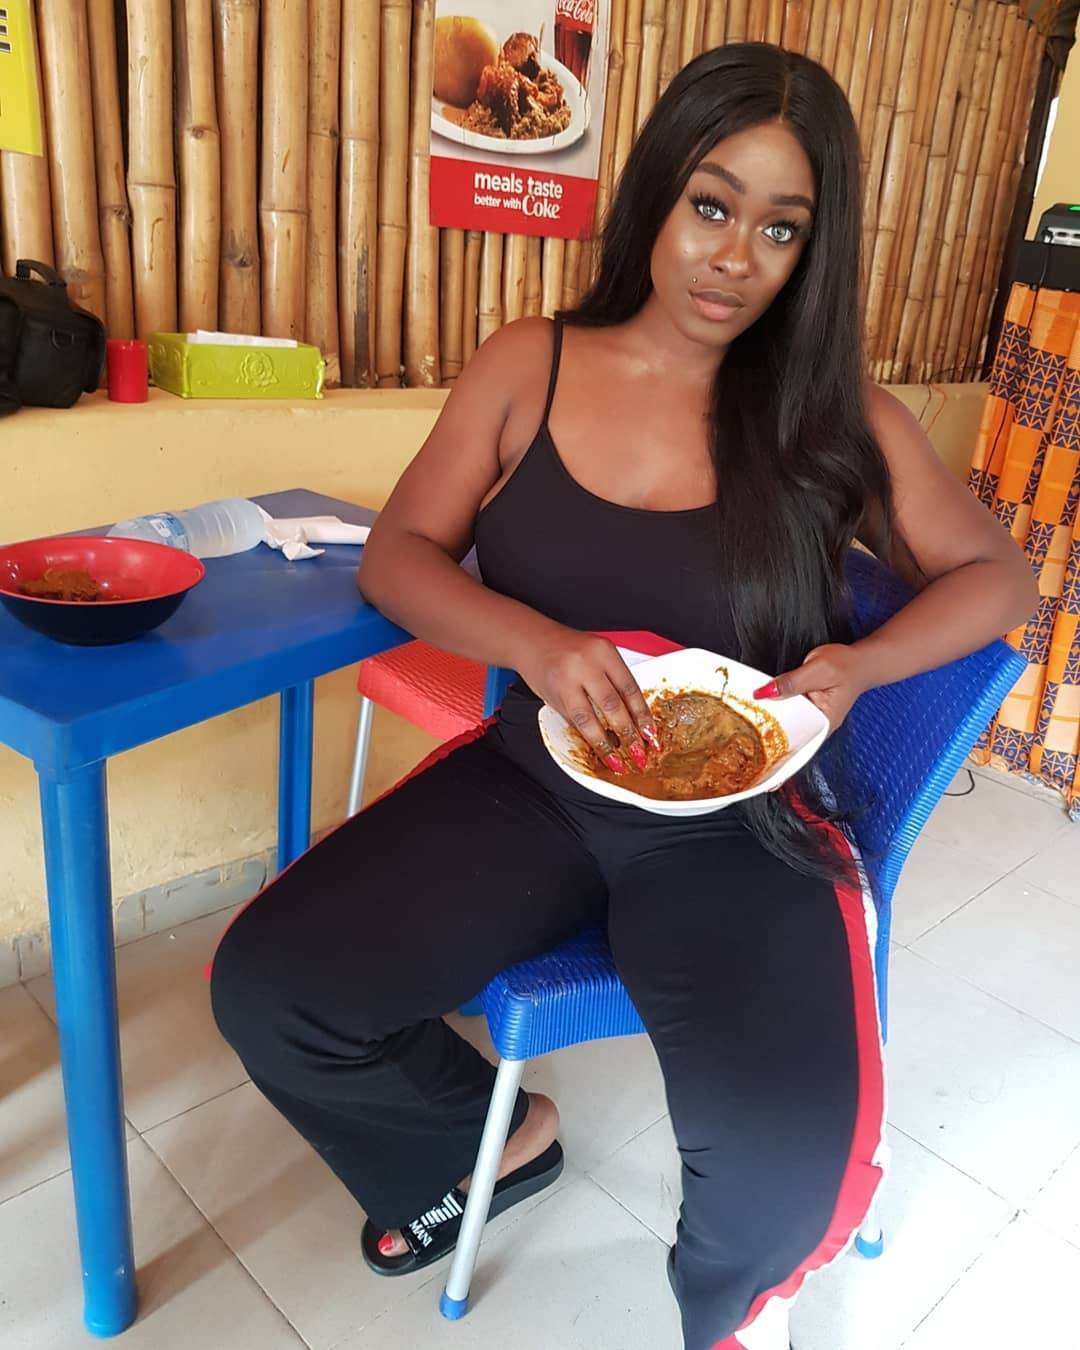 BBNaija's Uriel Blasted For Using Long Nails To Eat Amala. She Responds